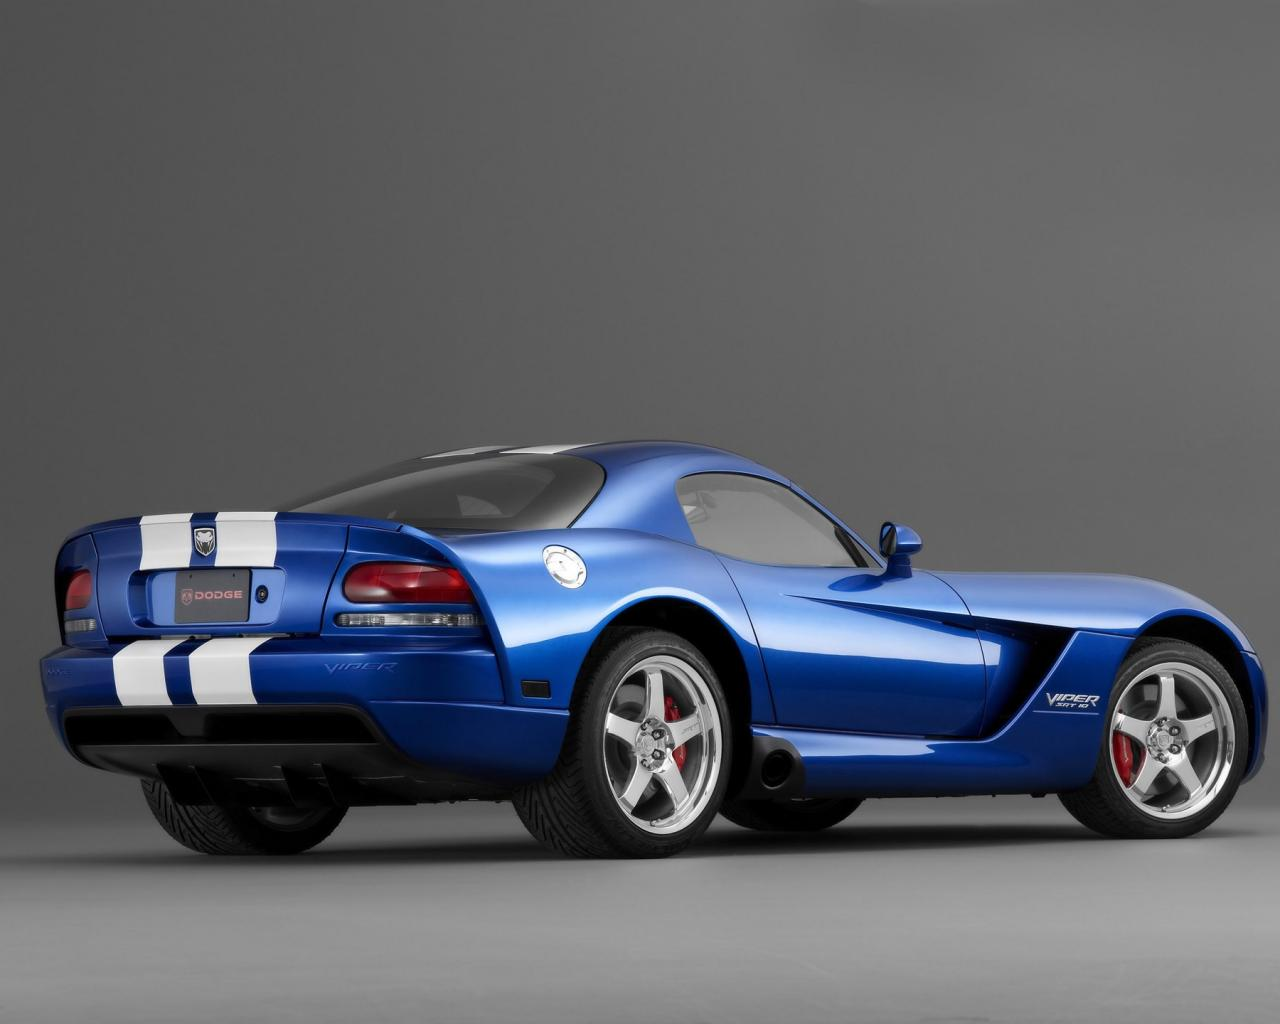 2006 Dodge Viper Srt10 Ra Studio 1280x1024